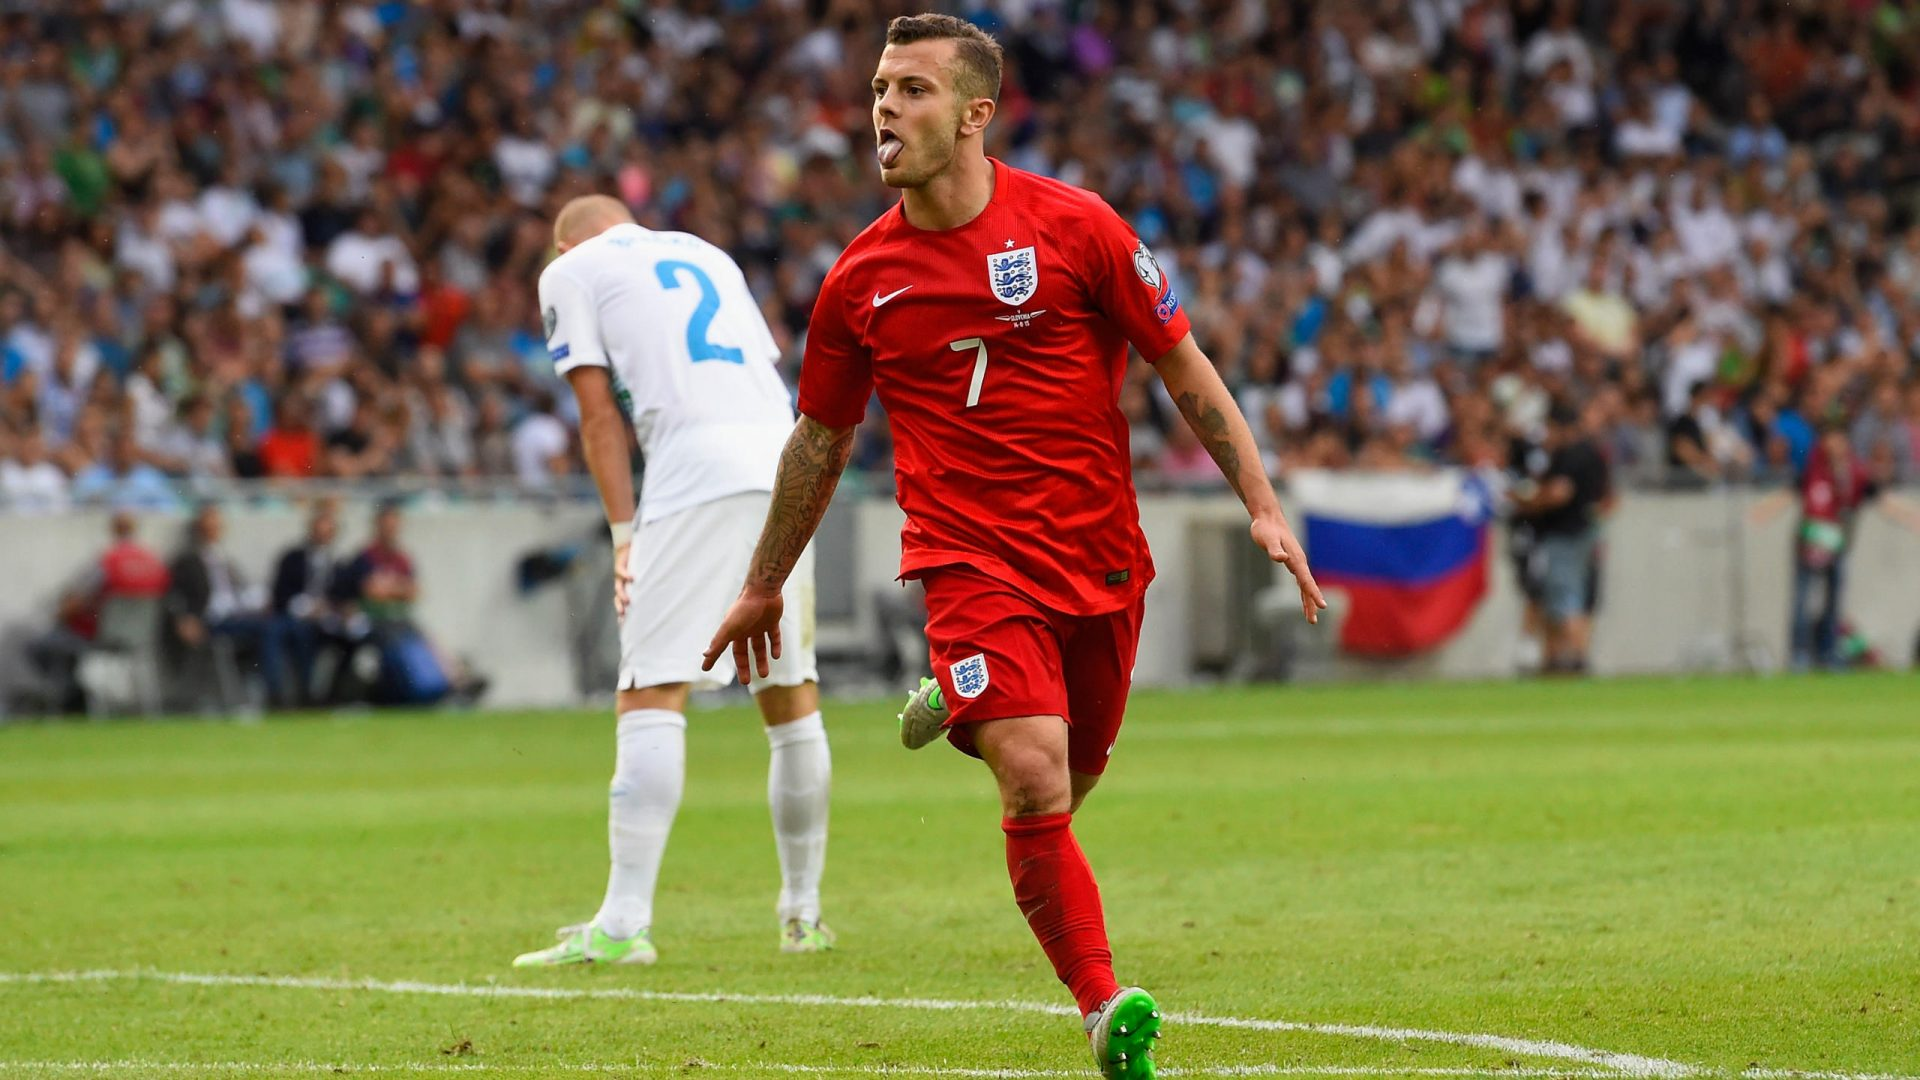 Jack Wilshire in action for England